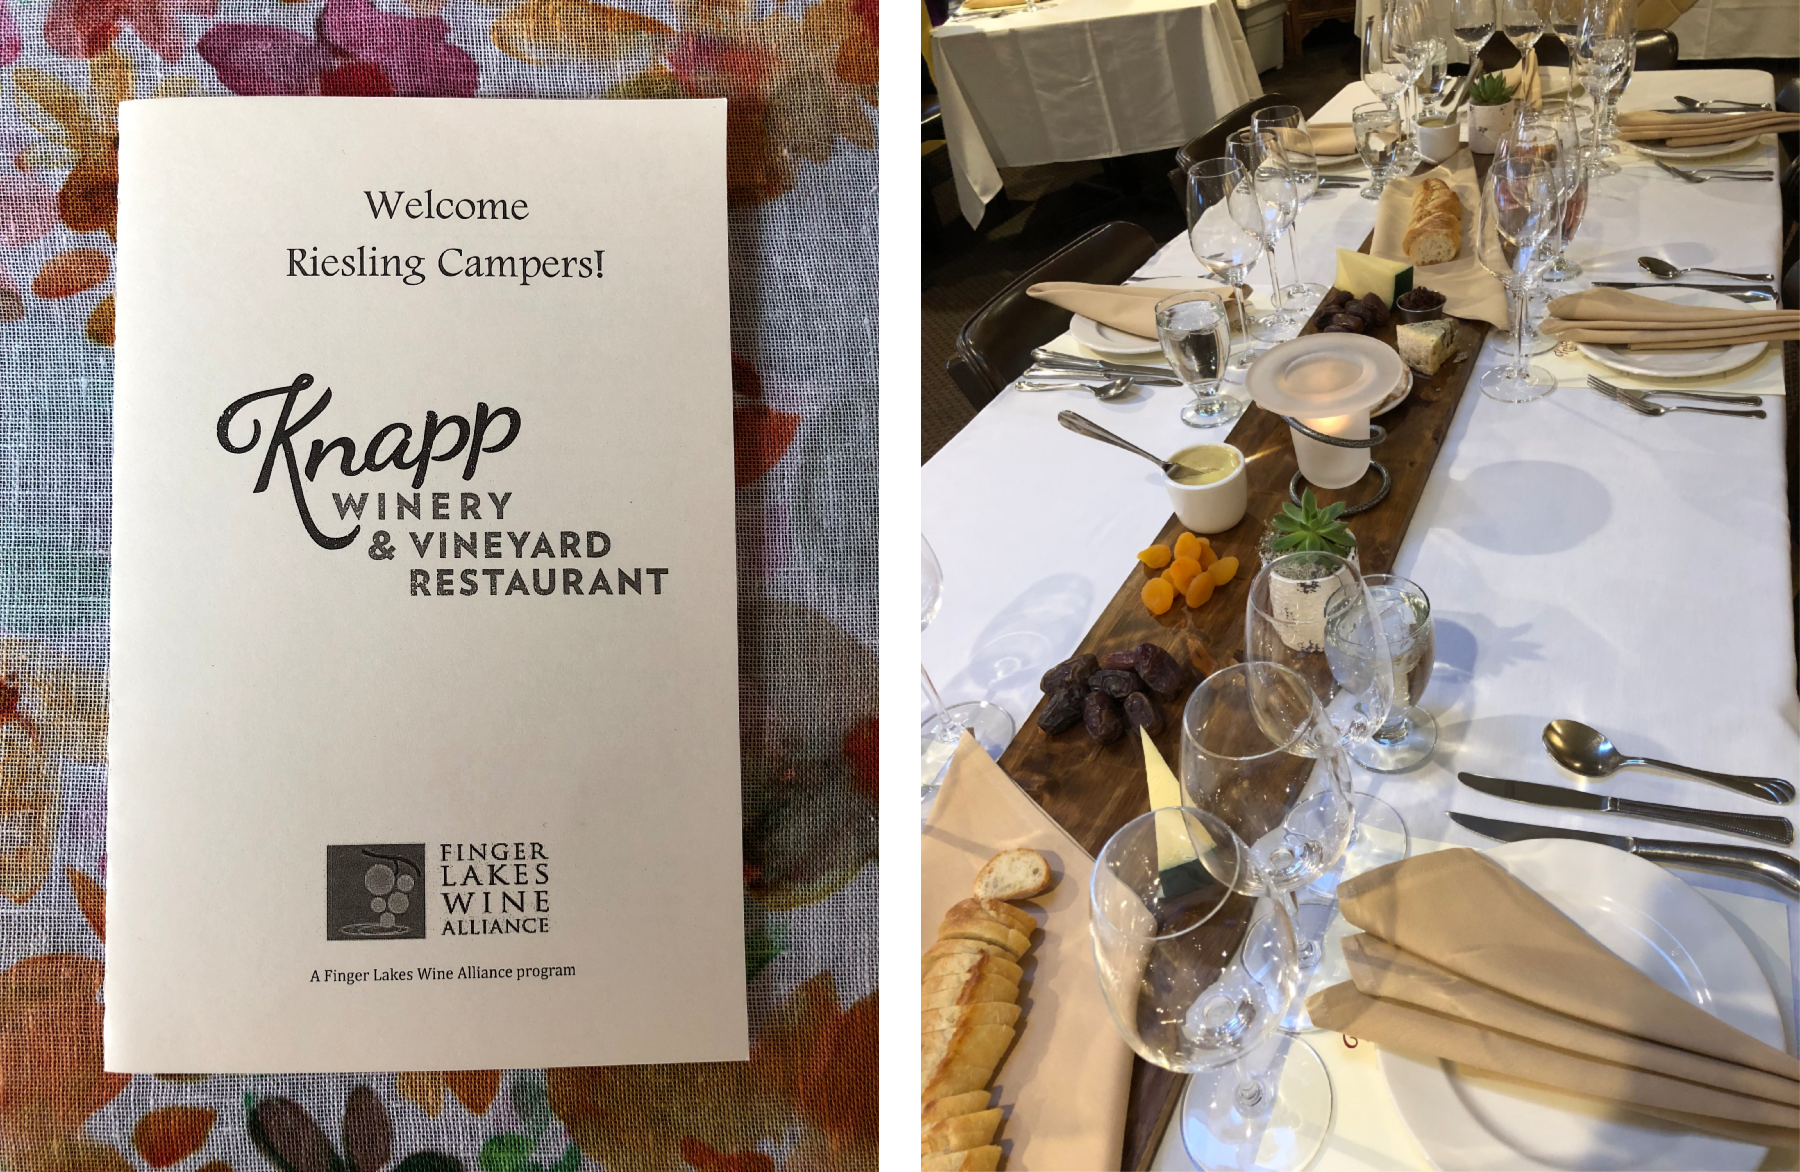 FLX Riesling Camp: Knapp Winery & Vineyard Restaurant - Wine